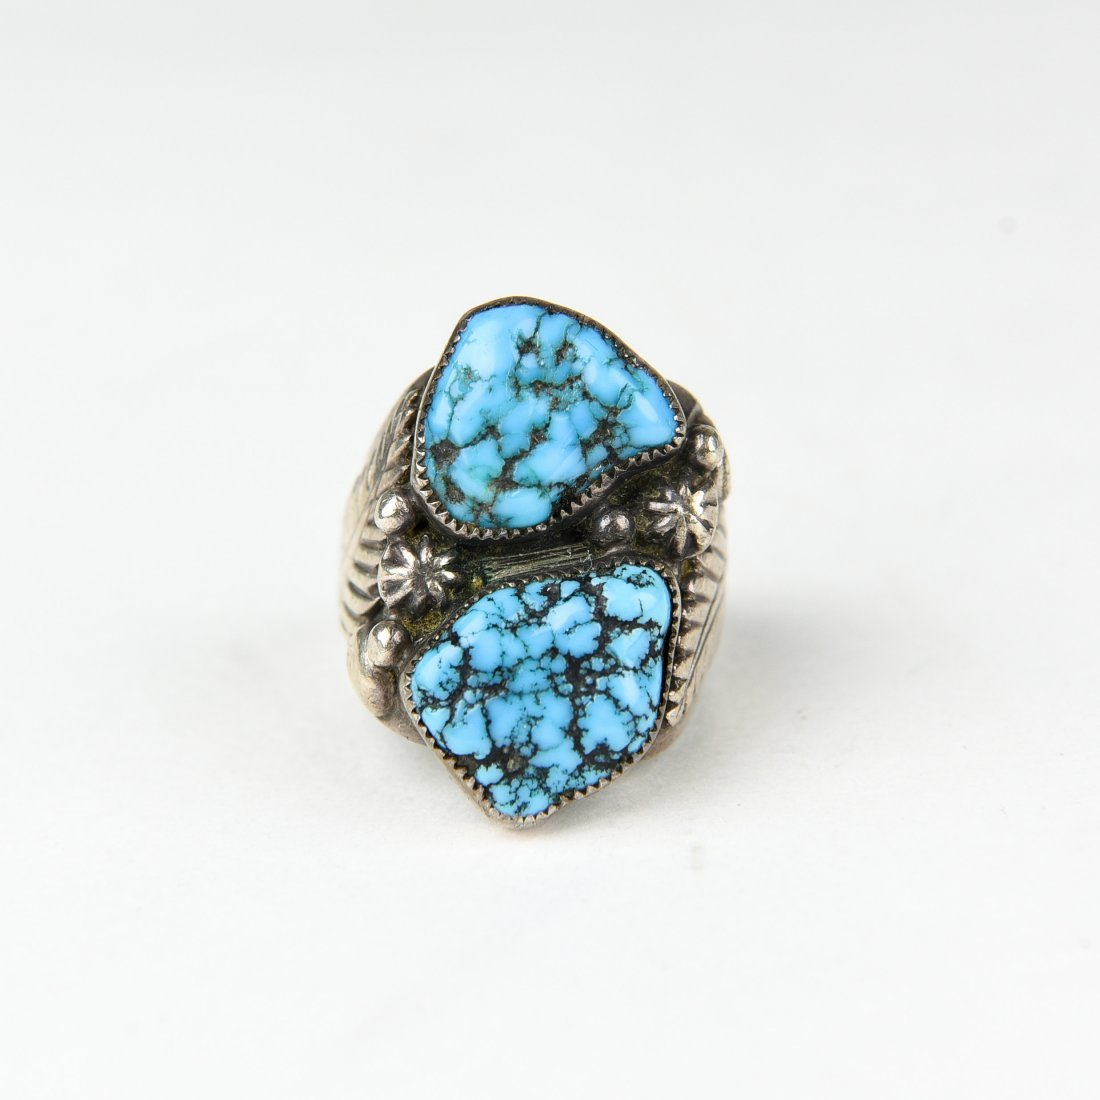 2 STONE STERLING AND TURQUOISE RING